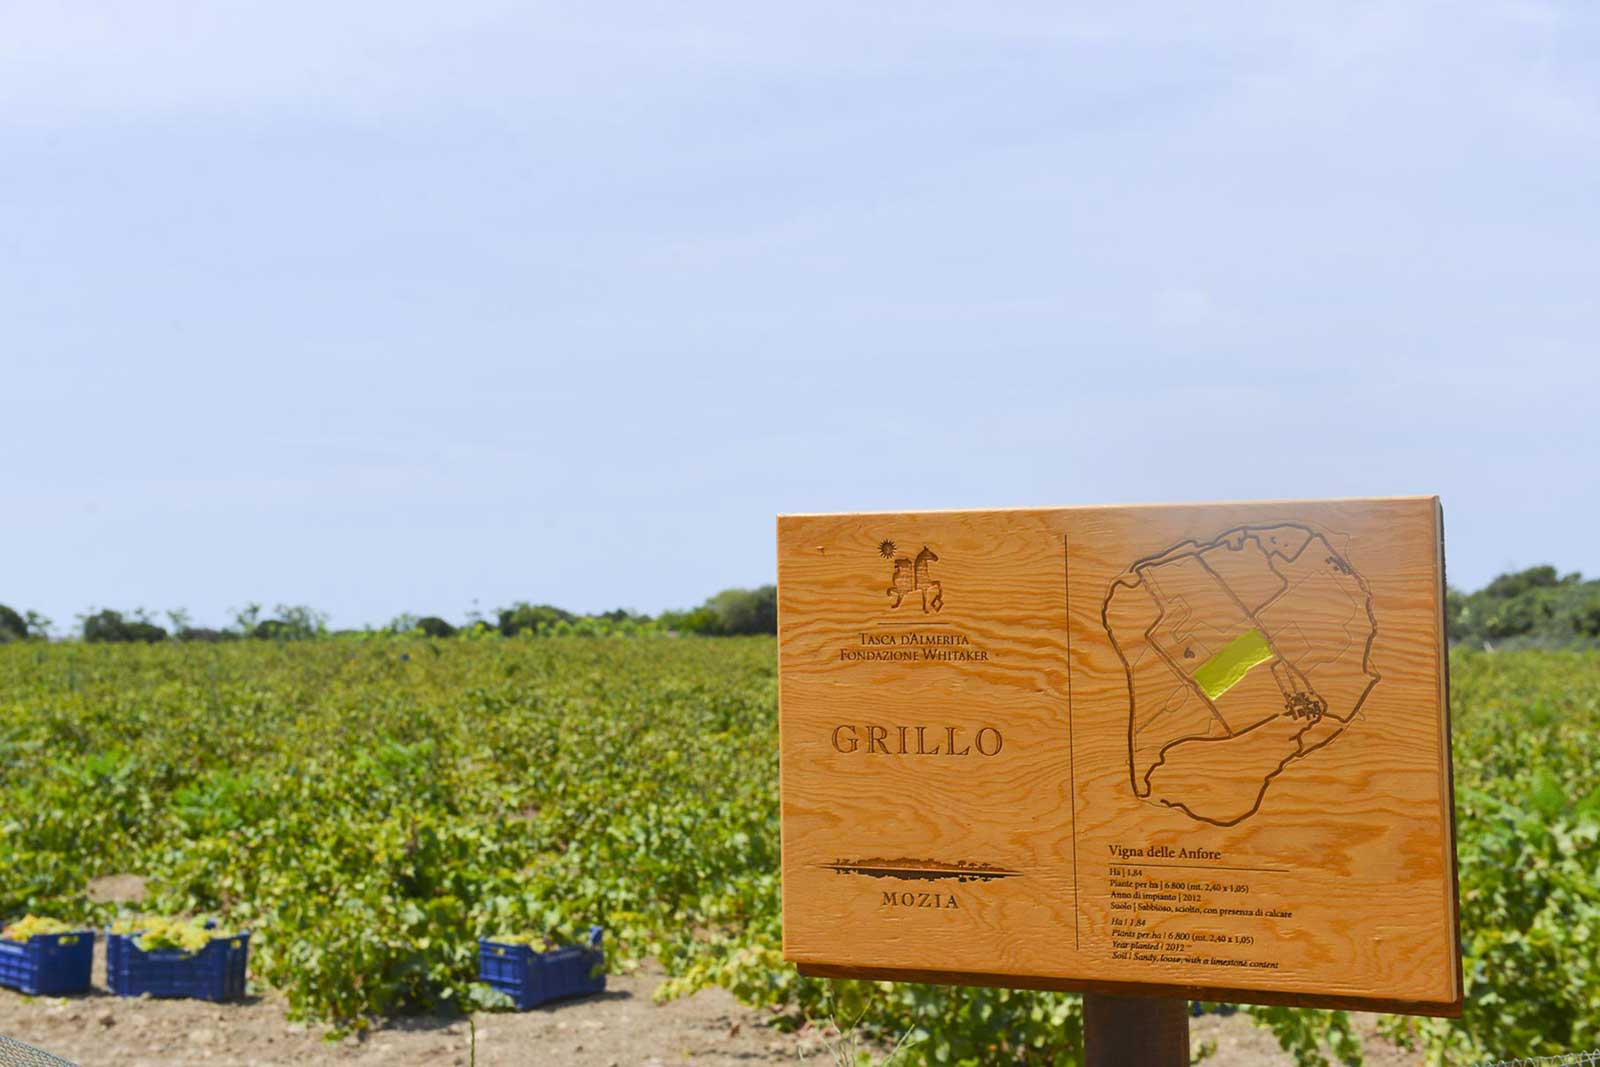 The Grillo vineyard on Mozia comprises 12 of the 40 hectares on the island. ©Tasca d'Almerita